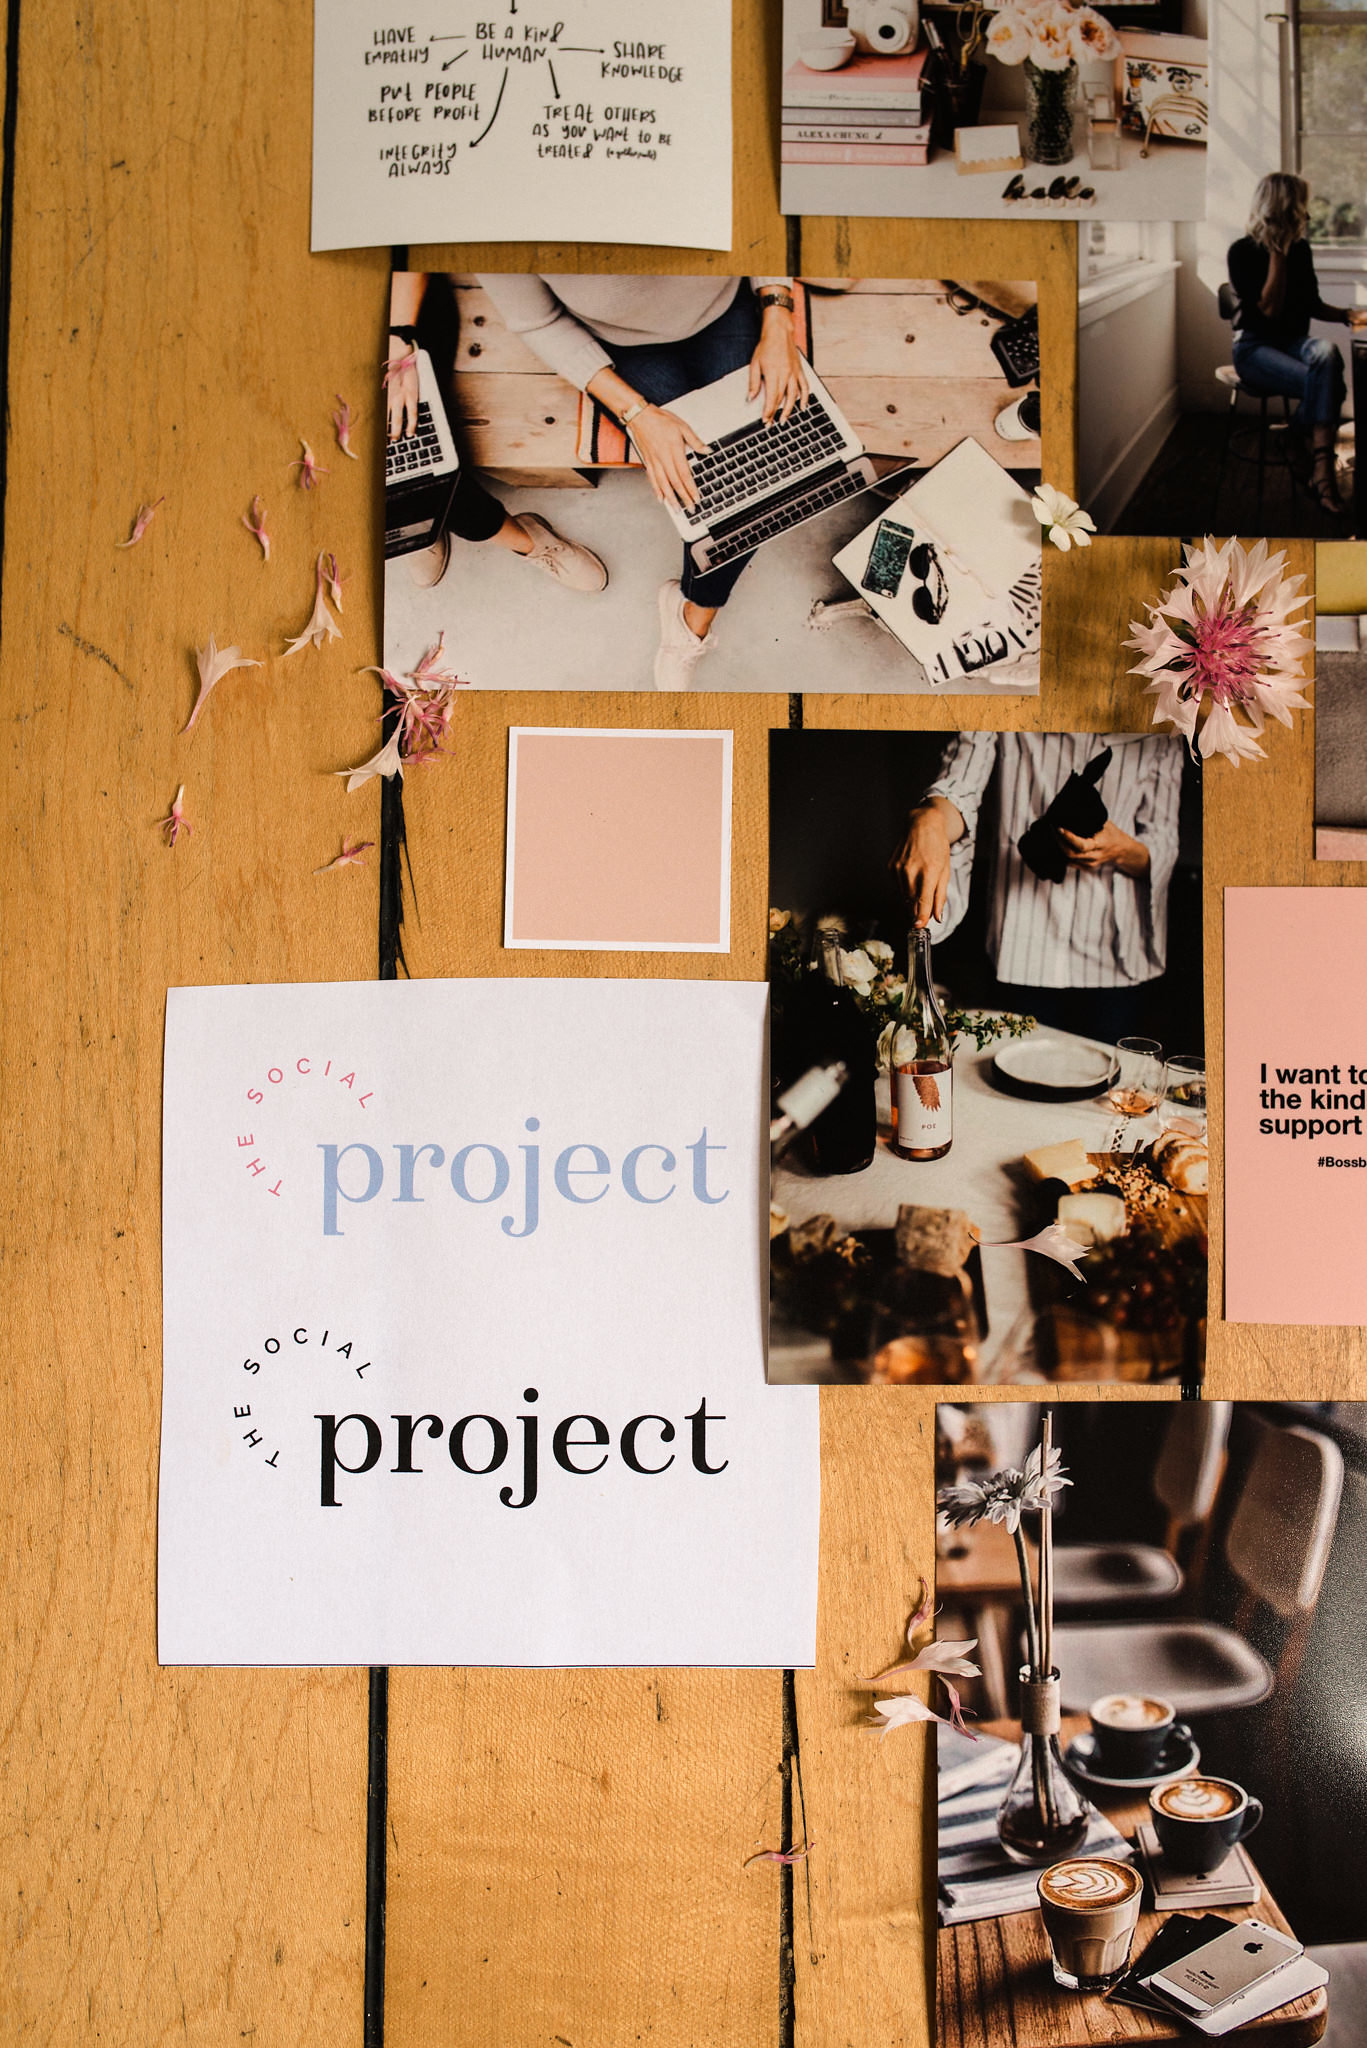 The Social Project, Barrie Social Project, Barrie Social, Branding, Social Media, Creative, Creative Collaboration, Girl Boss, Barrie Boss Babes, Entrepreneurs, Graphic Design, Mood Board, Branding Process